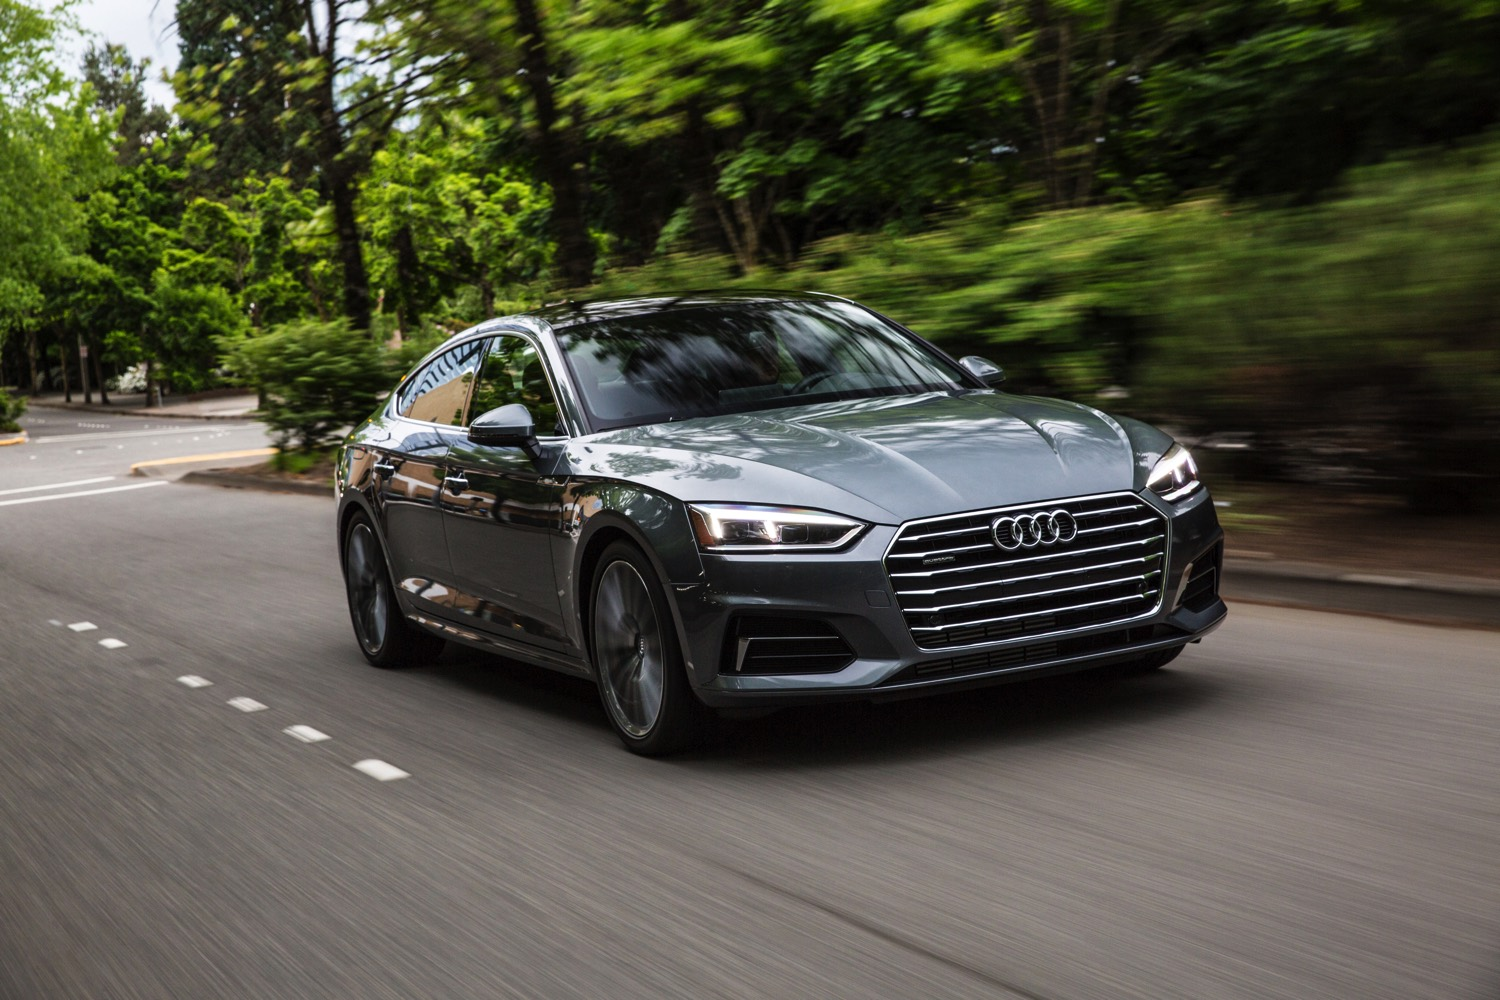 Audi's A5 Sportback | Hope lives in its audacity | txGarage